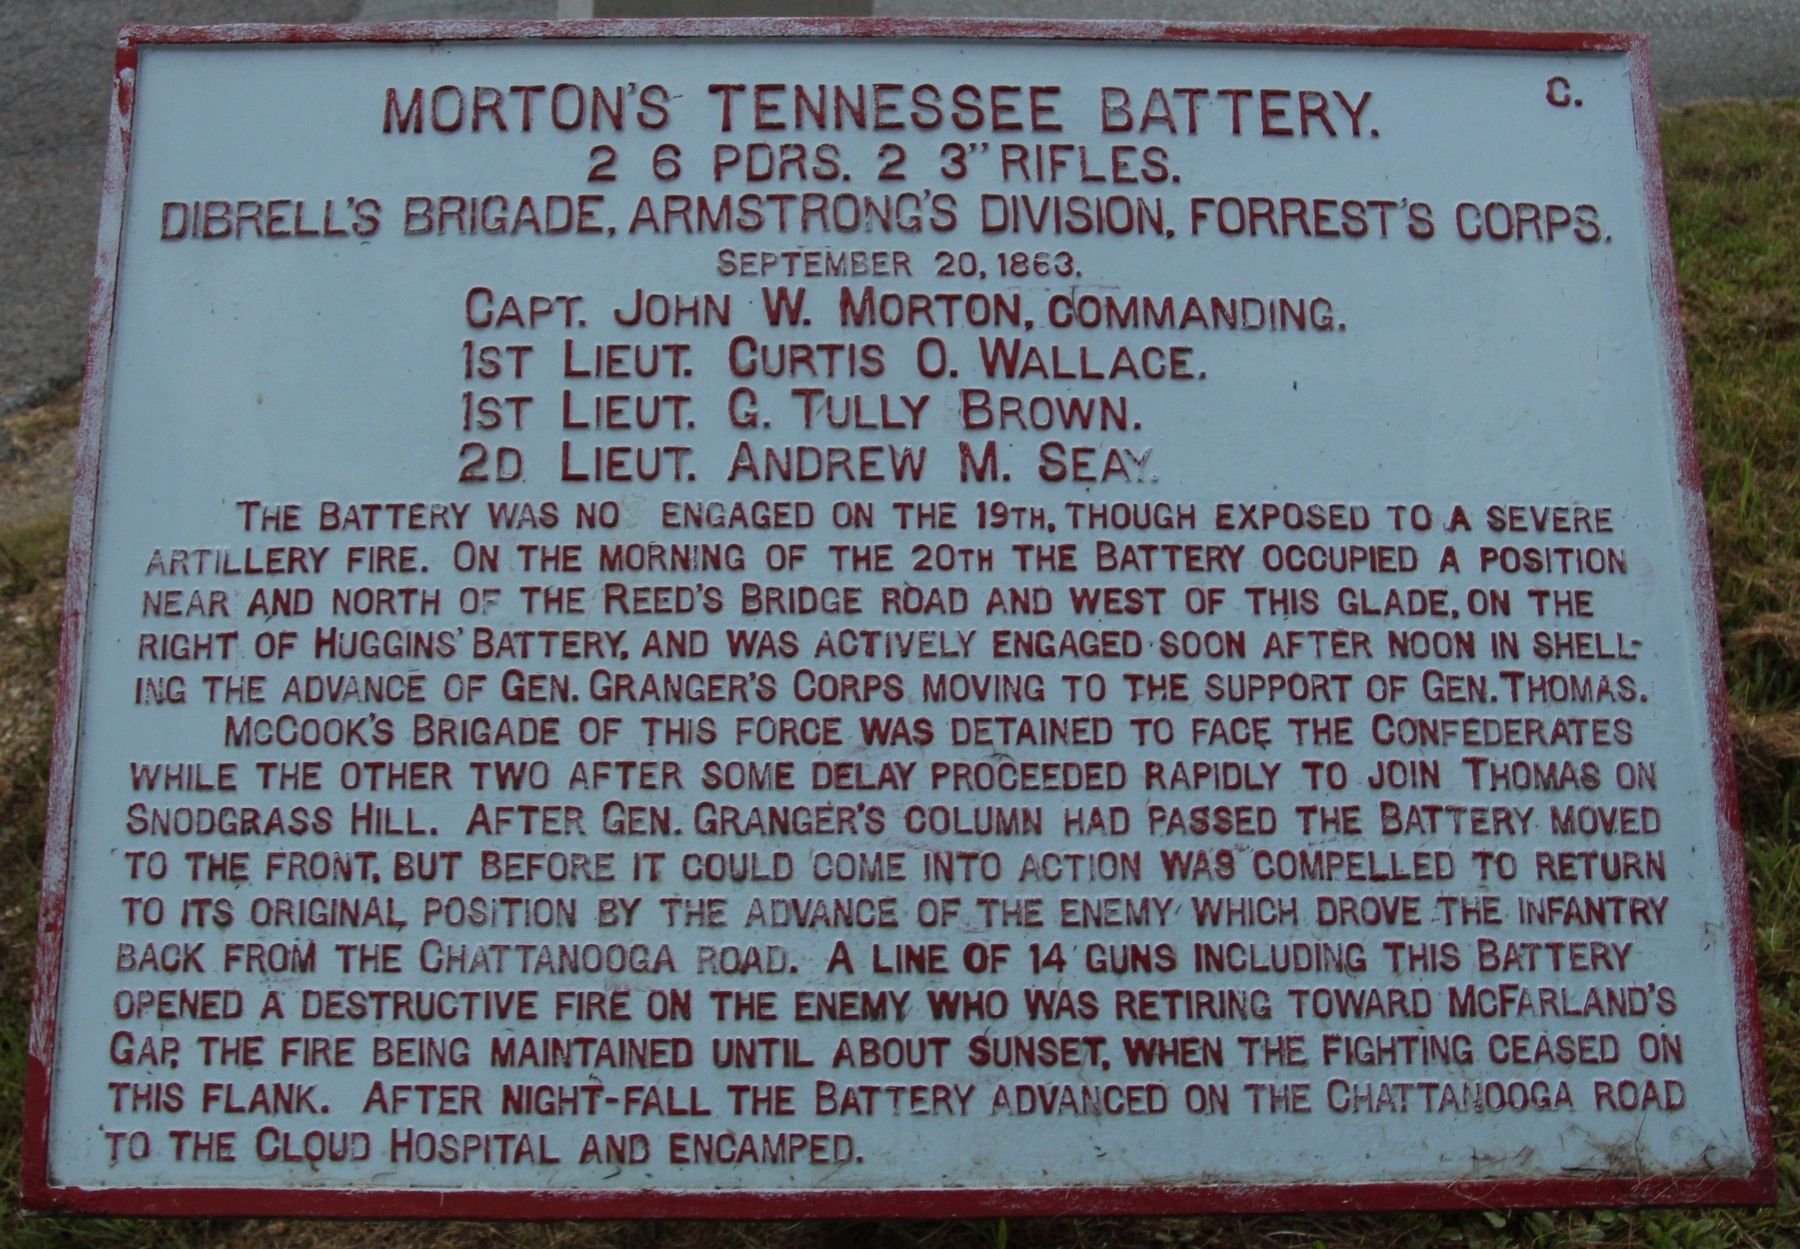 Morton's Tennessee Battery Marker image. Click for full size.